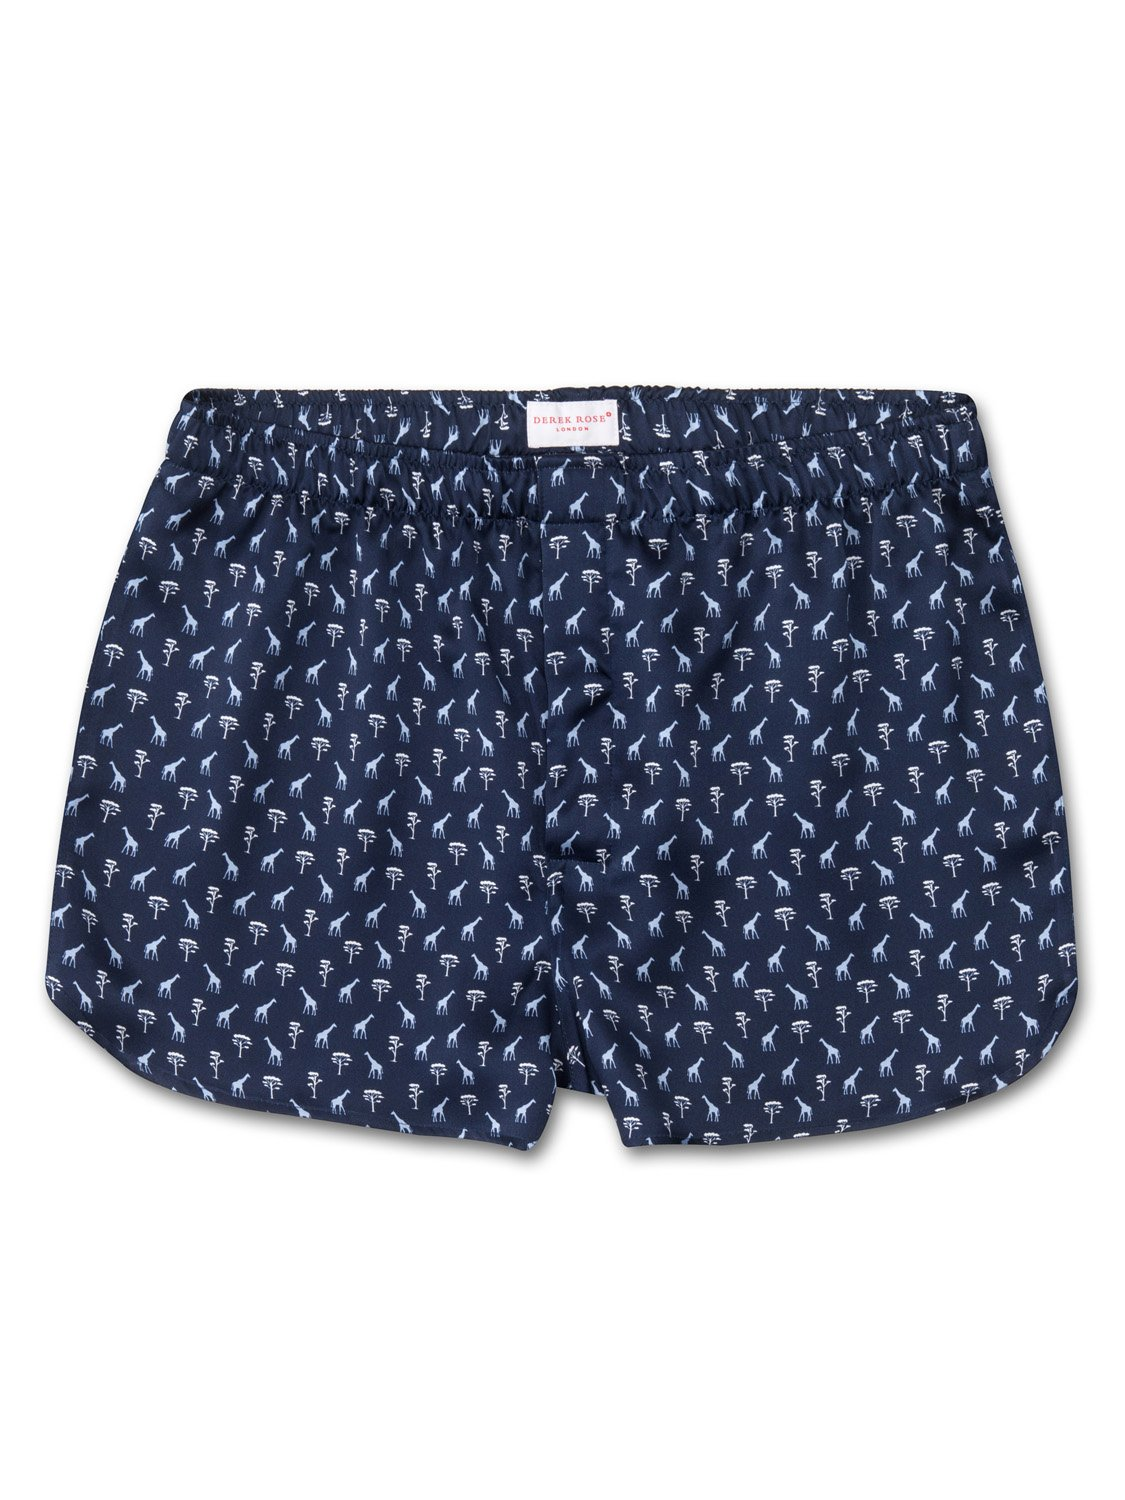 Men's Modern Fit Boxer Shorts Brindisi 18 Pure Silk Satin Navy